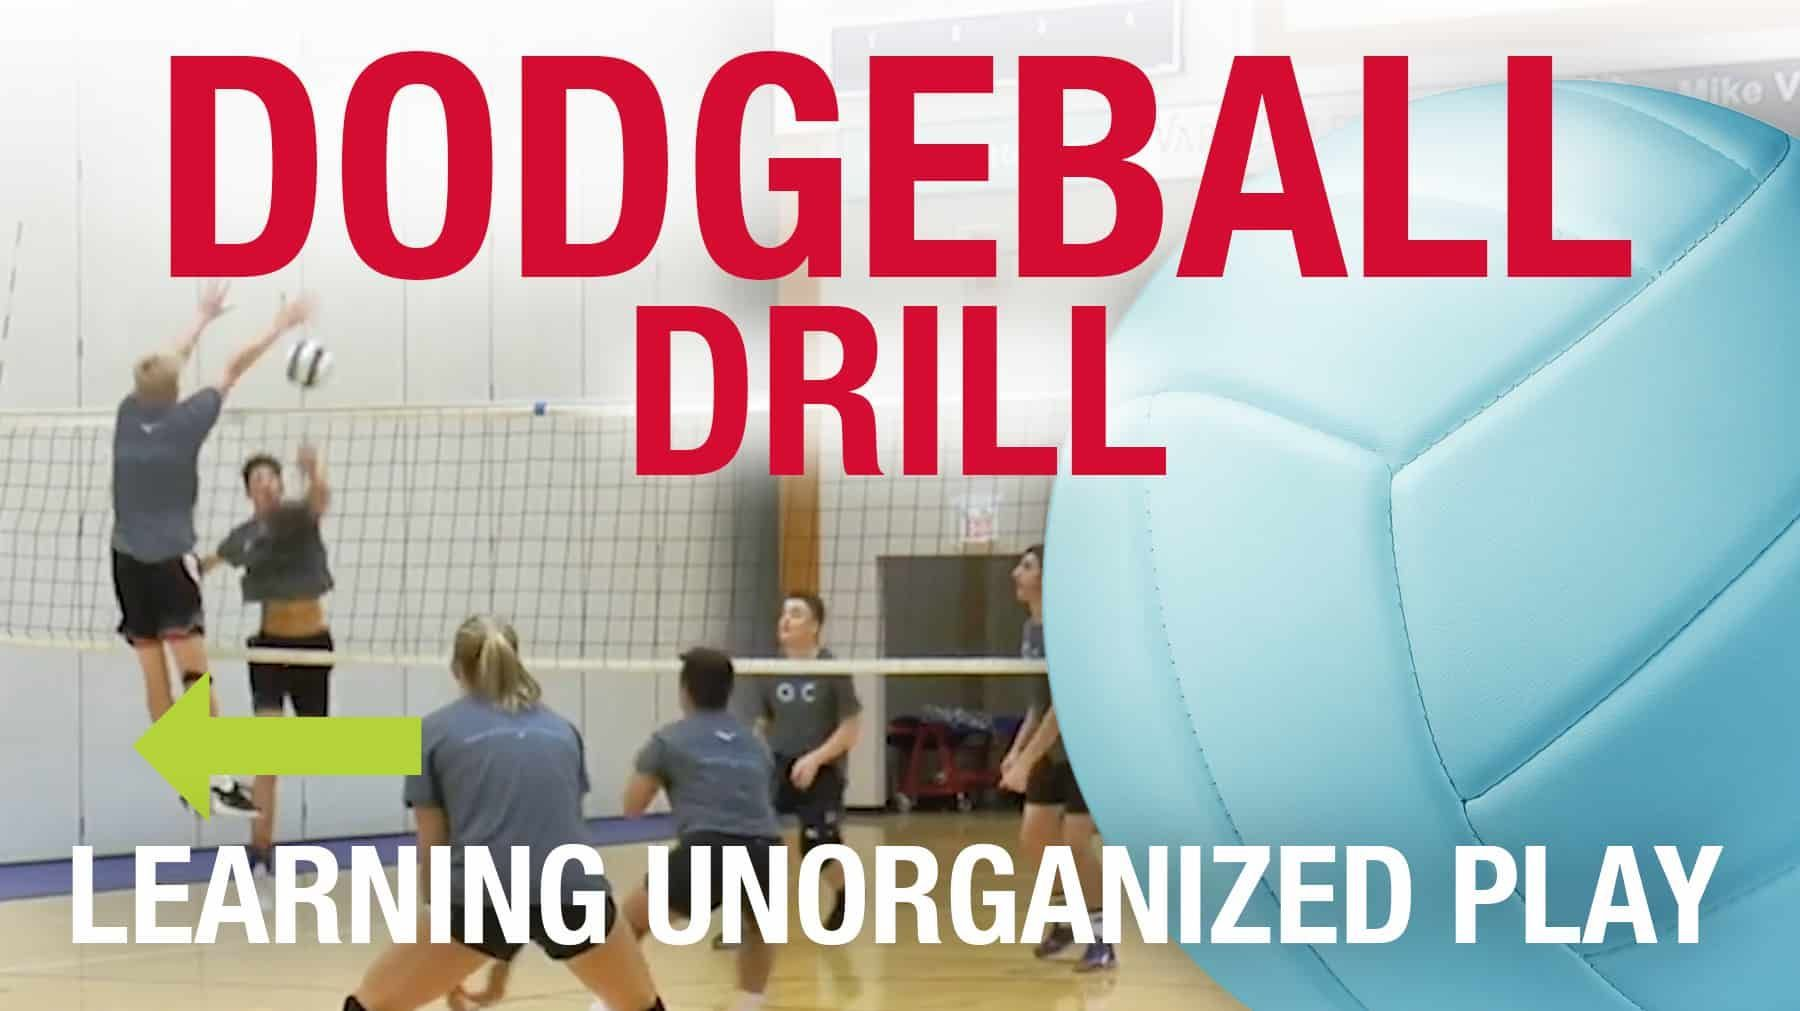 Dodgeball Drill Learning Unorganized Play Coaching Volleyball Volleyball Drills Drill